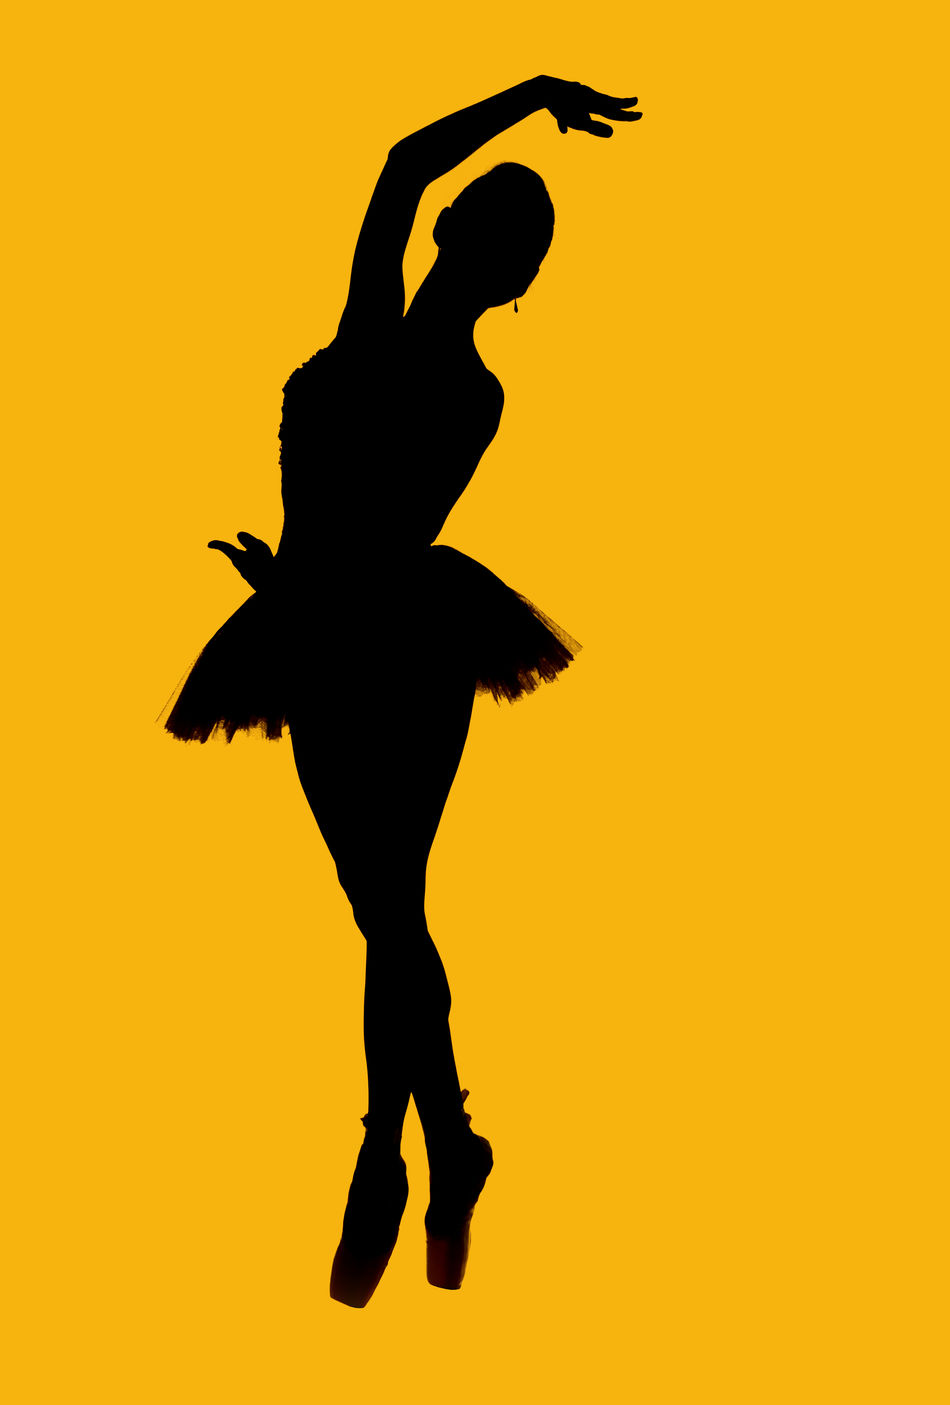 Black silhouette of ballerina isolated over yellow background Art Artist Balance Ballerina Ballet Ballet Dancer Ballet Shoes Ballet Tutu Black Silhouette Bodice Choreography Cut Out Dancer Elegant Graceful Isolated Outline People Pointe Shoes Pose Prima Silhouette Slim Woman Yellow Background